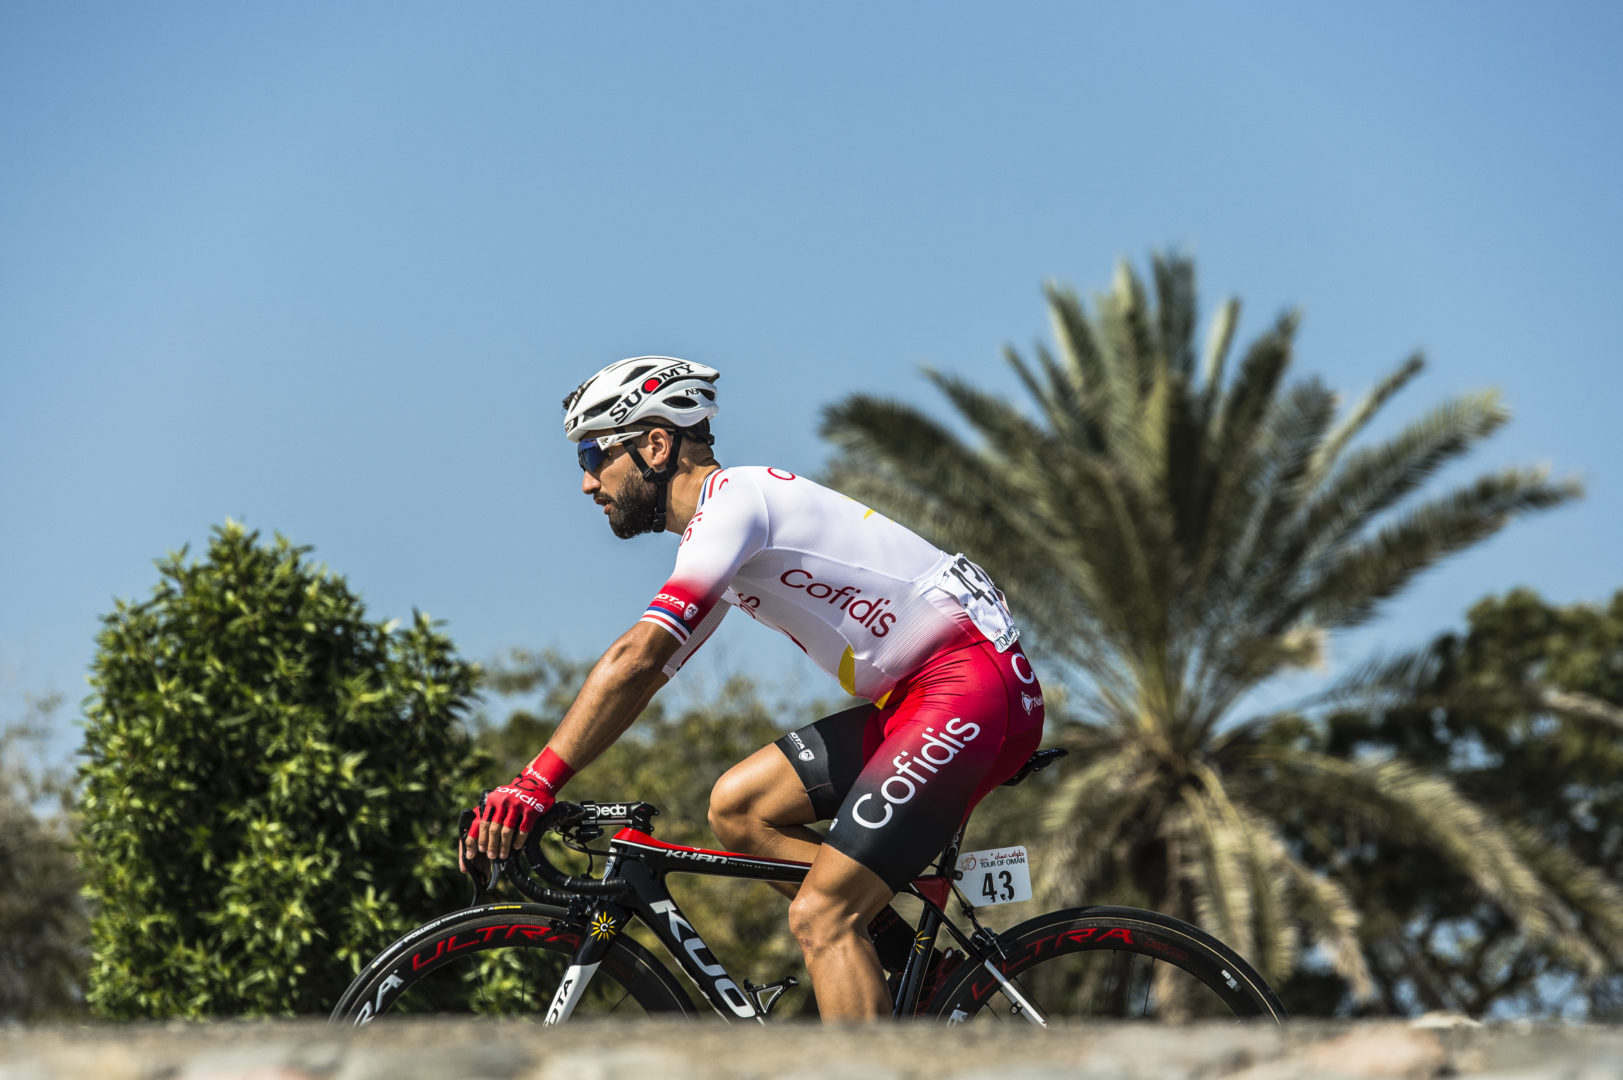 16/02/2019 - Tour of Oman - Stage 1 - Al Sawadi Beach - Suhar Corniche - Nacer Bouhanni (Cofidis, Solutions Credits). Credit: ASO/Kare Dehlie Thorstad